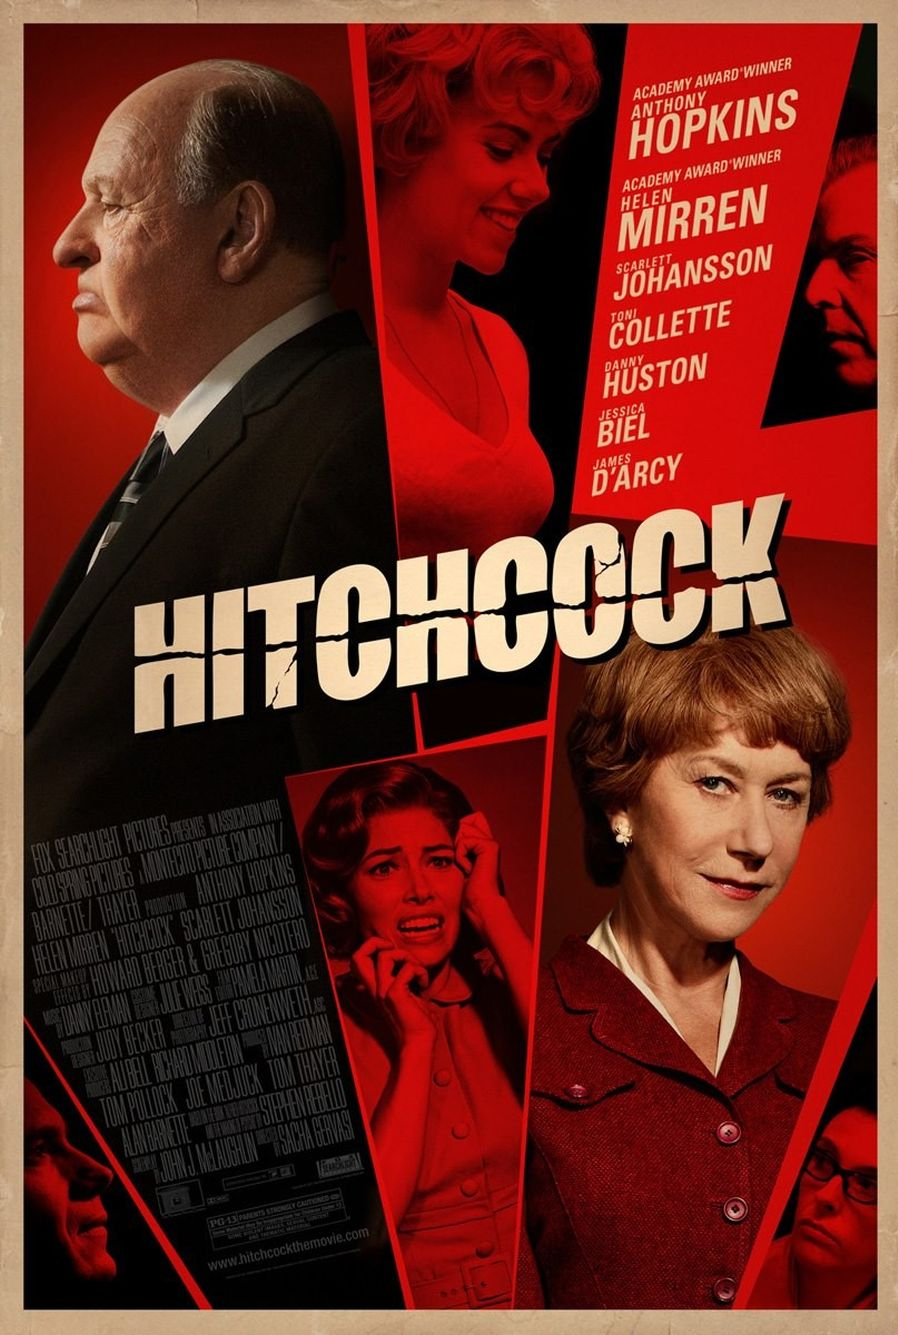 The First Trailer of 'Hitchcock' Starring Antony Hopkins Has Arrived!